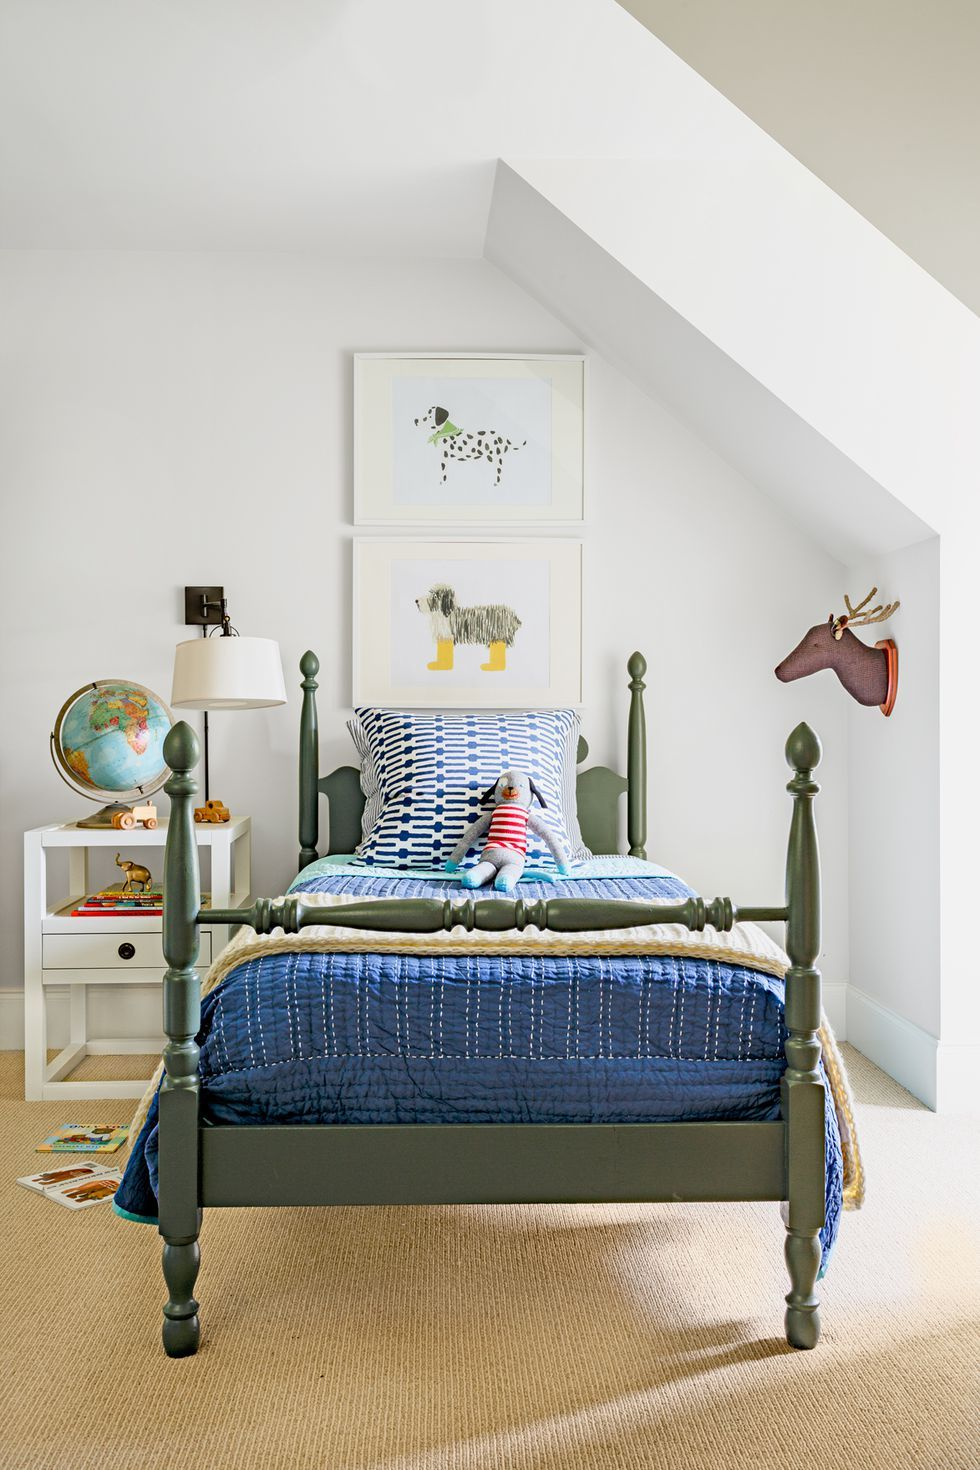 25 cool kids\u0027 room ideas how to decorate a child\u0027s bedroomCountry Kids Room Ideas #11